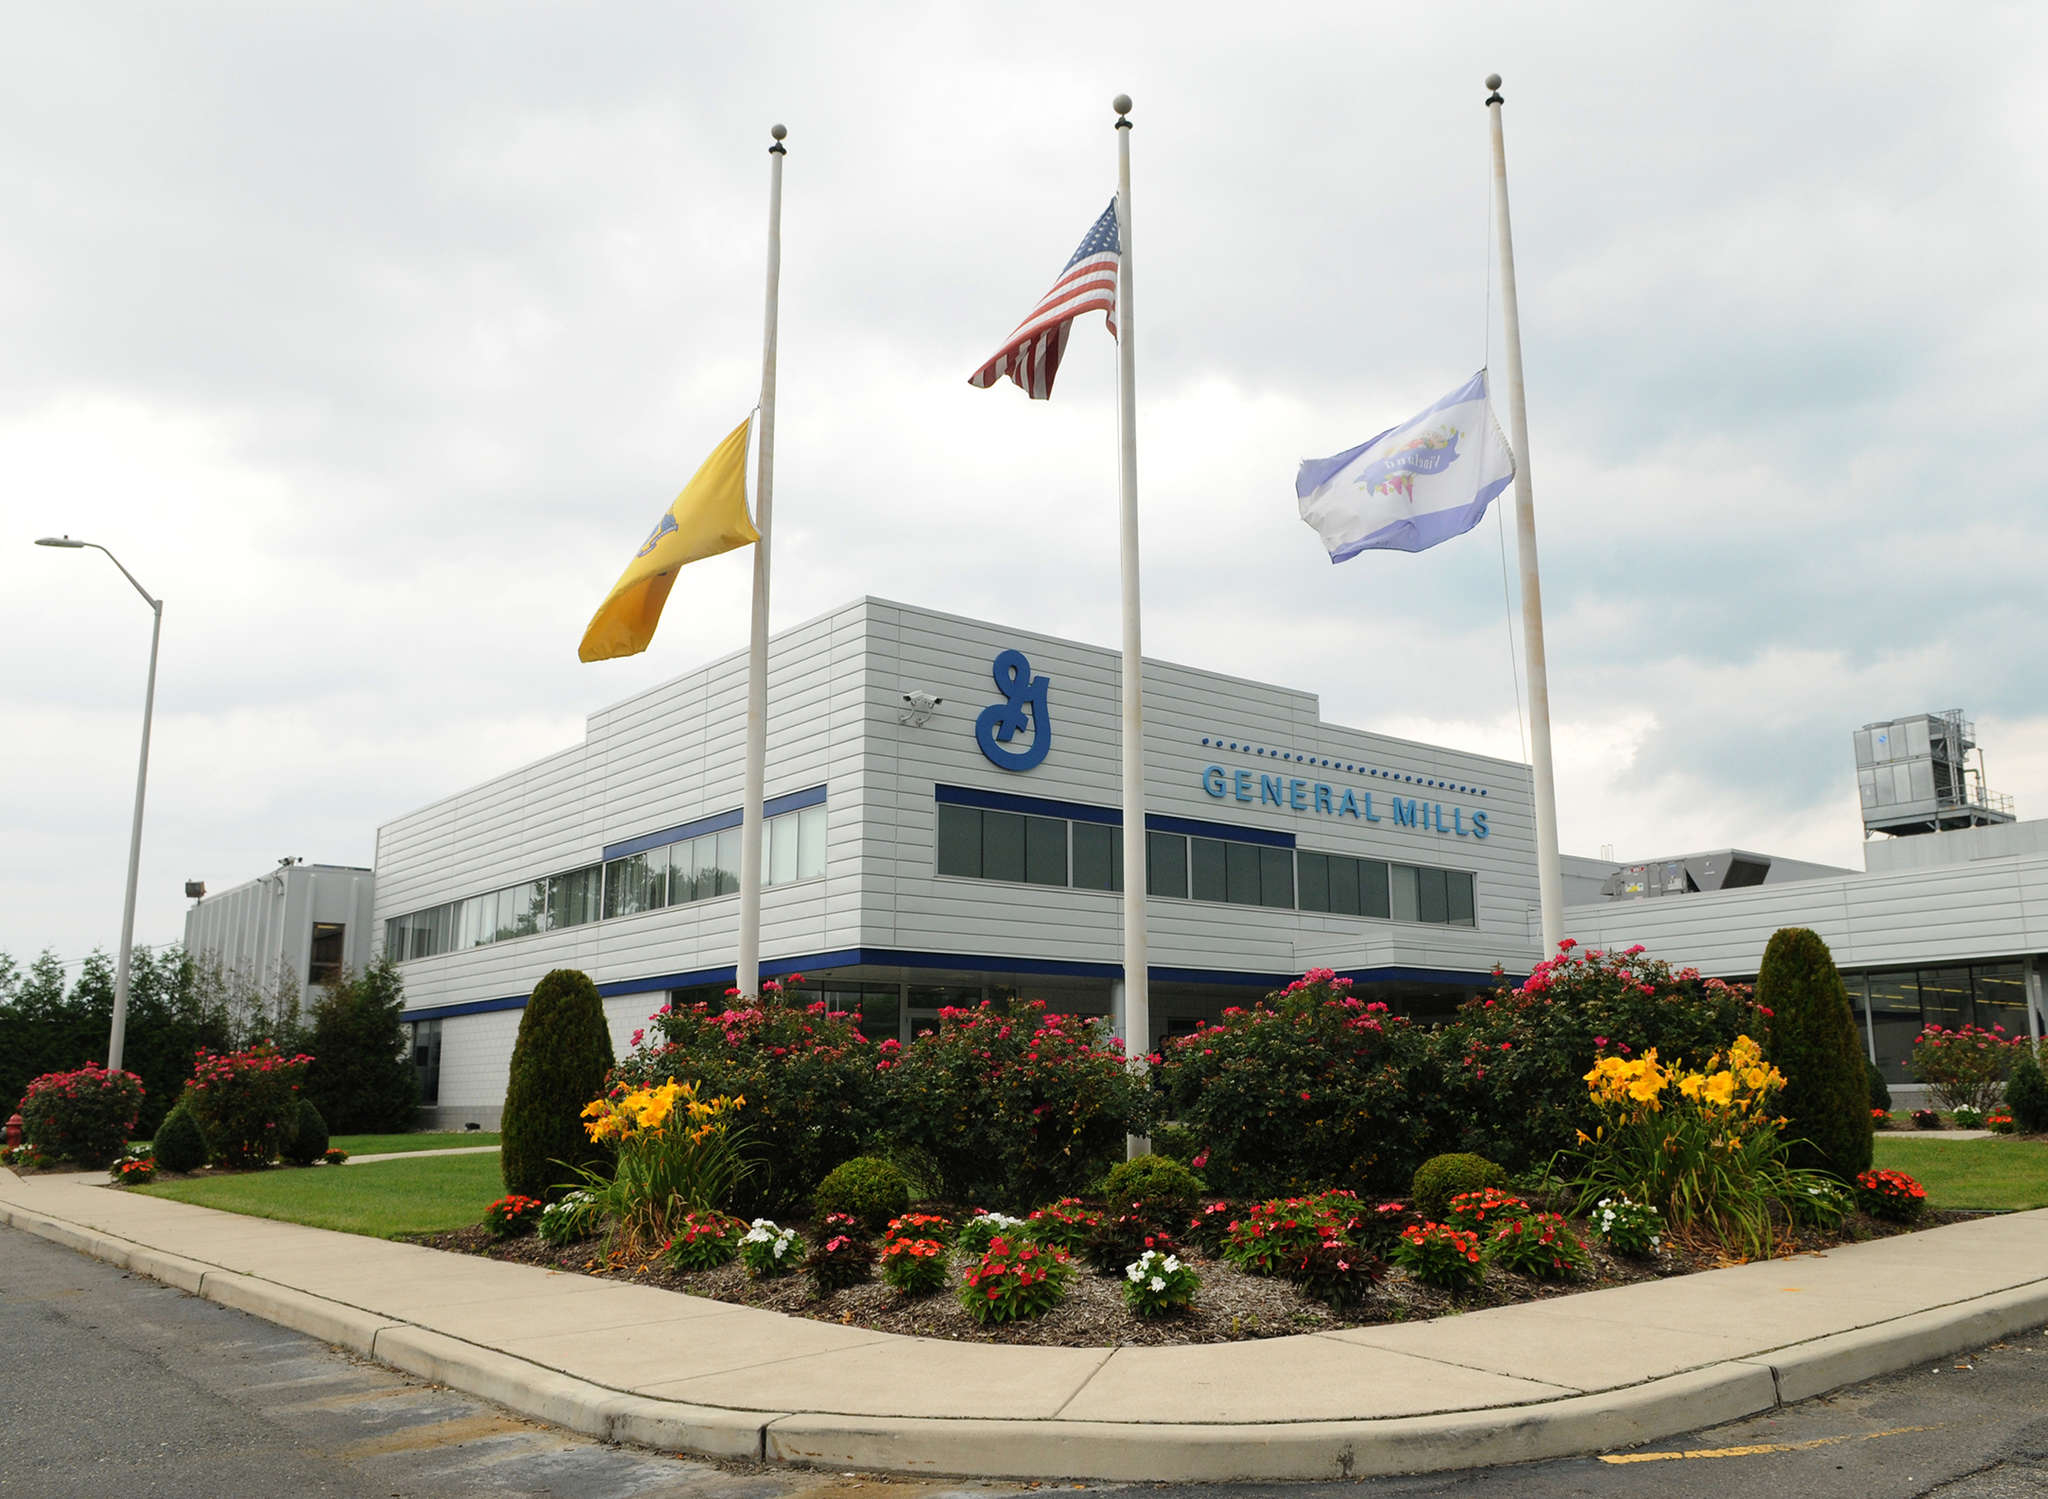 General Mills´ Progresso plant at 500 W. Elmer Rd. in Vineland employs 370 people, 270 of them union members.